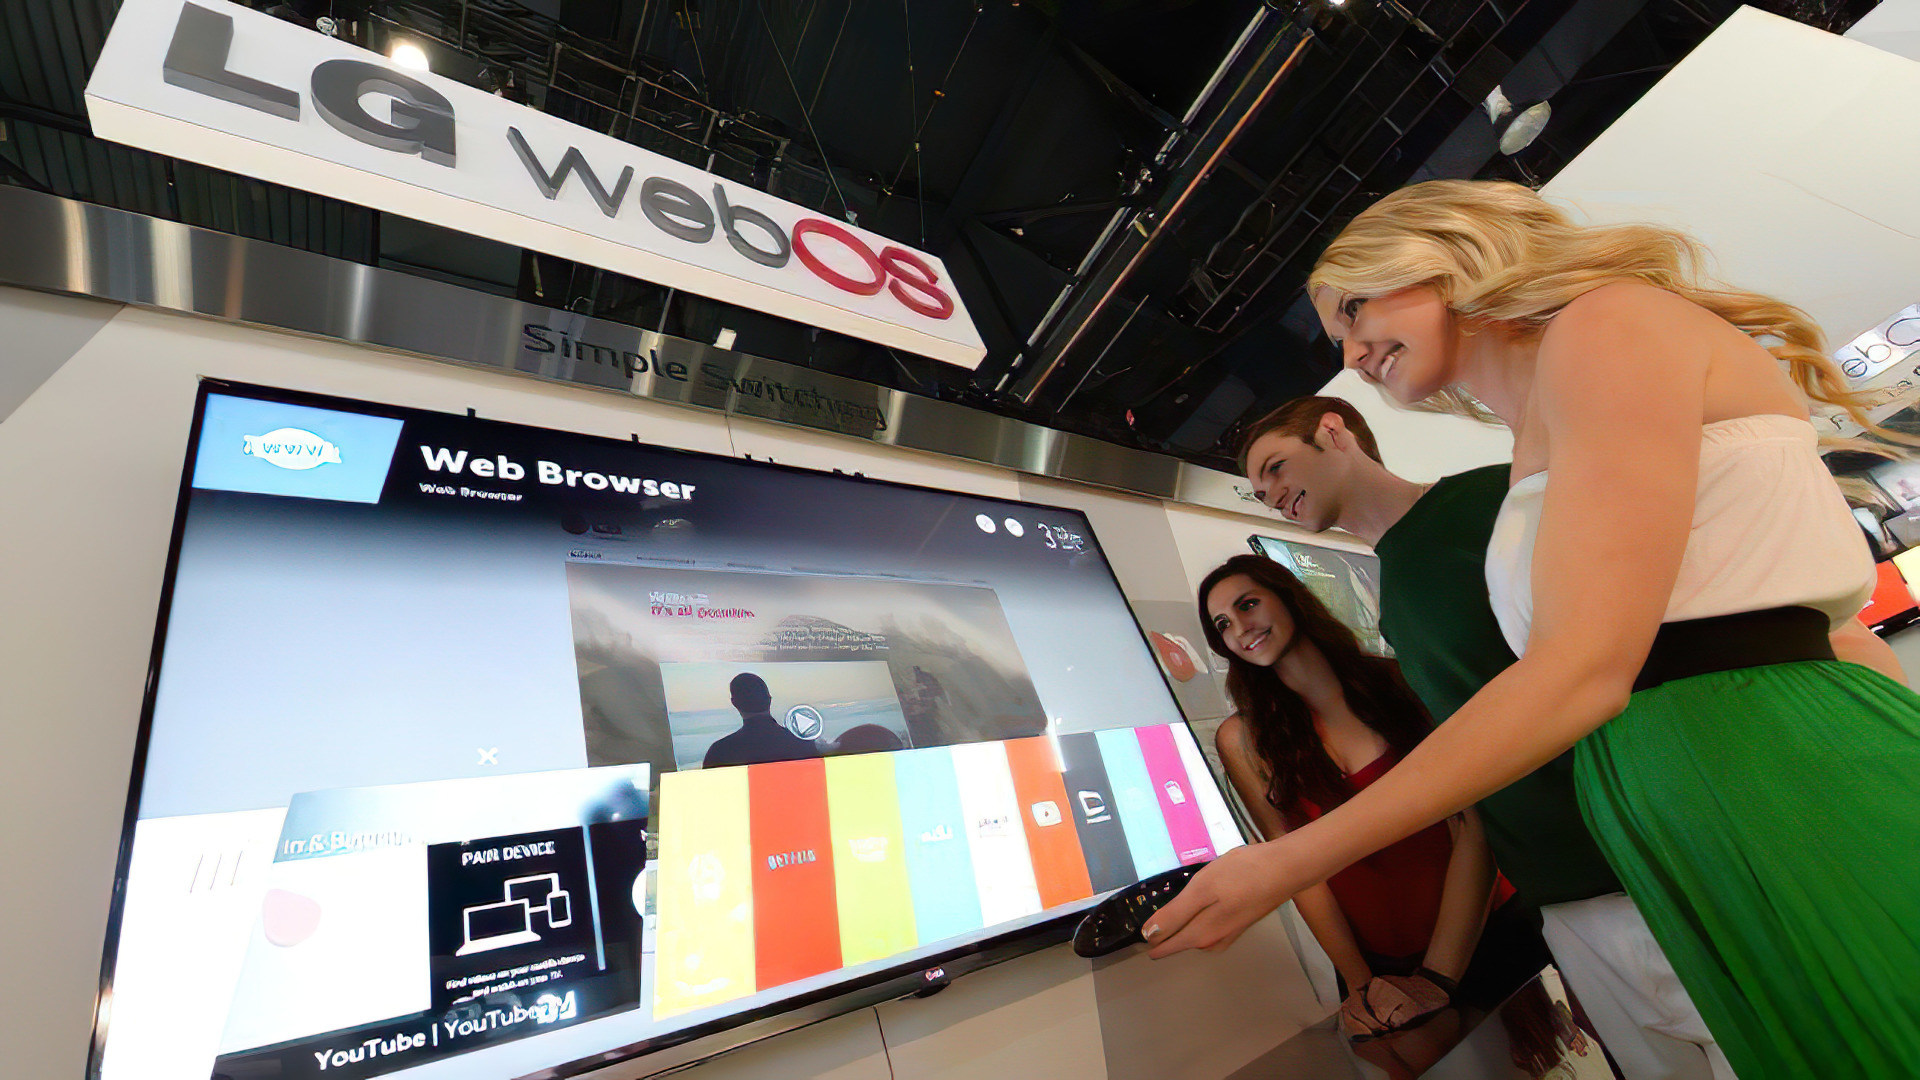 LG, Smart TV, Webos, Smart-TV, Ces 2014